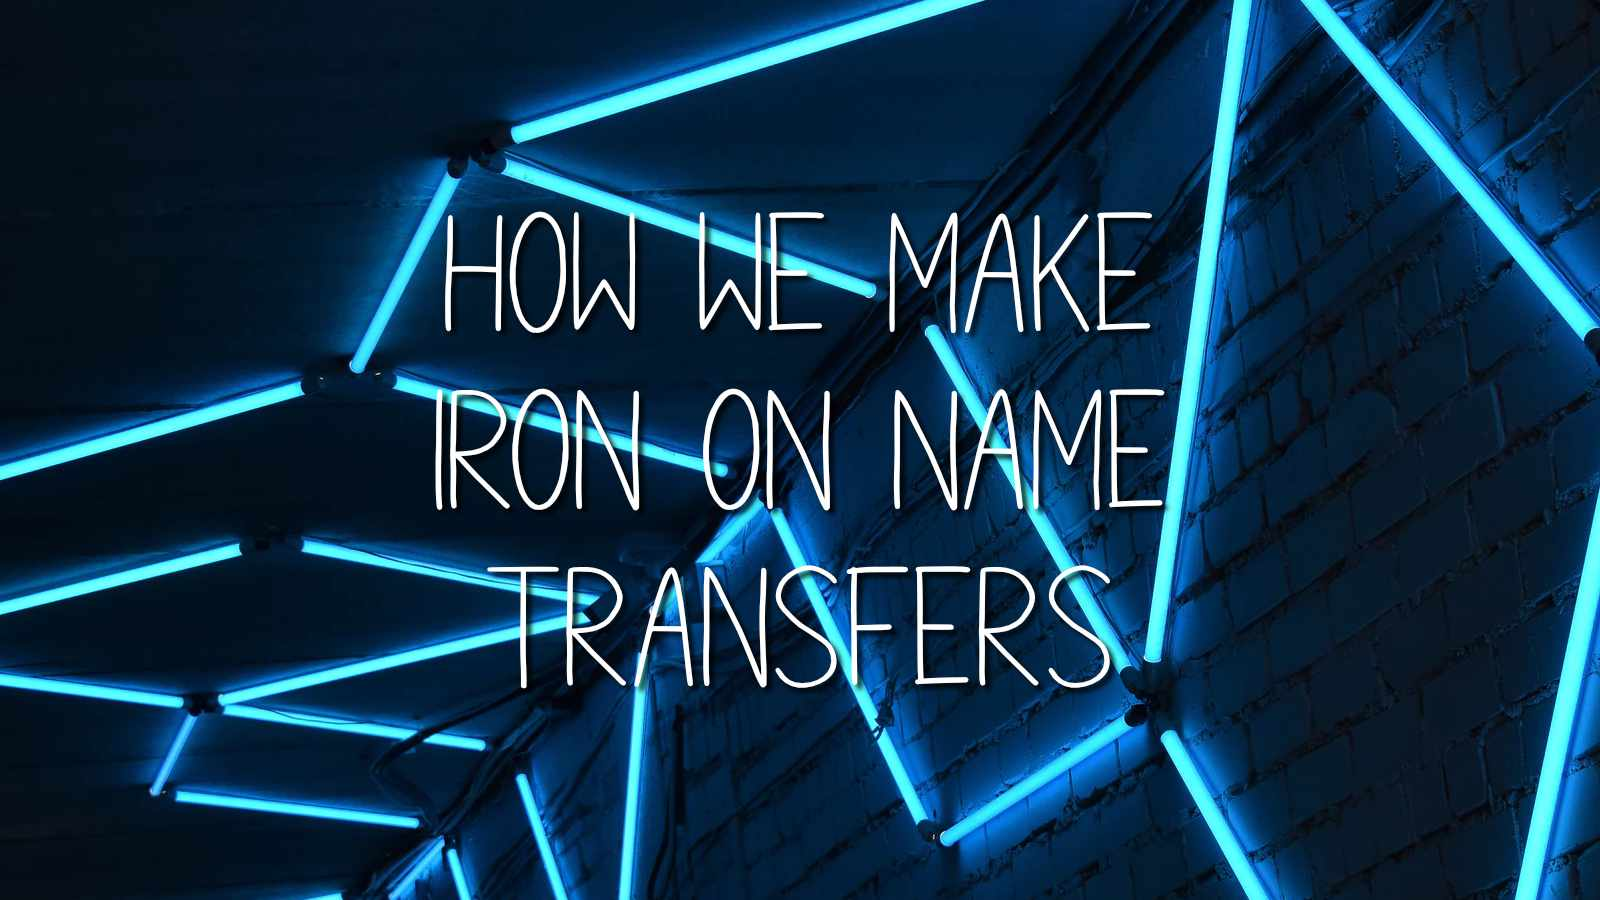 Iron on Name Transfers - How we make them